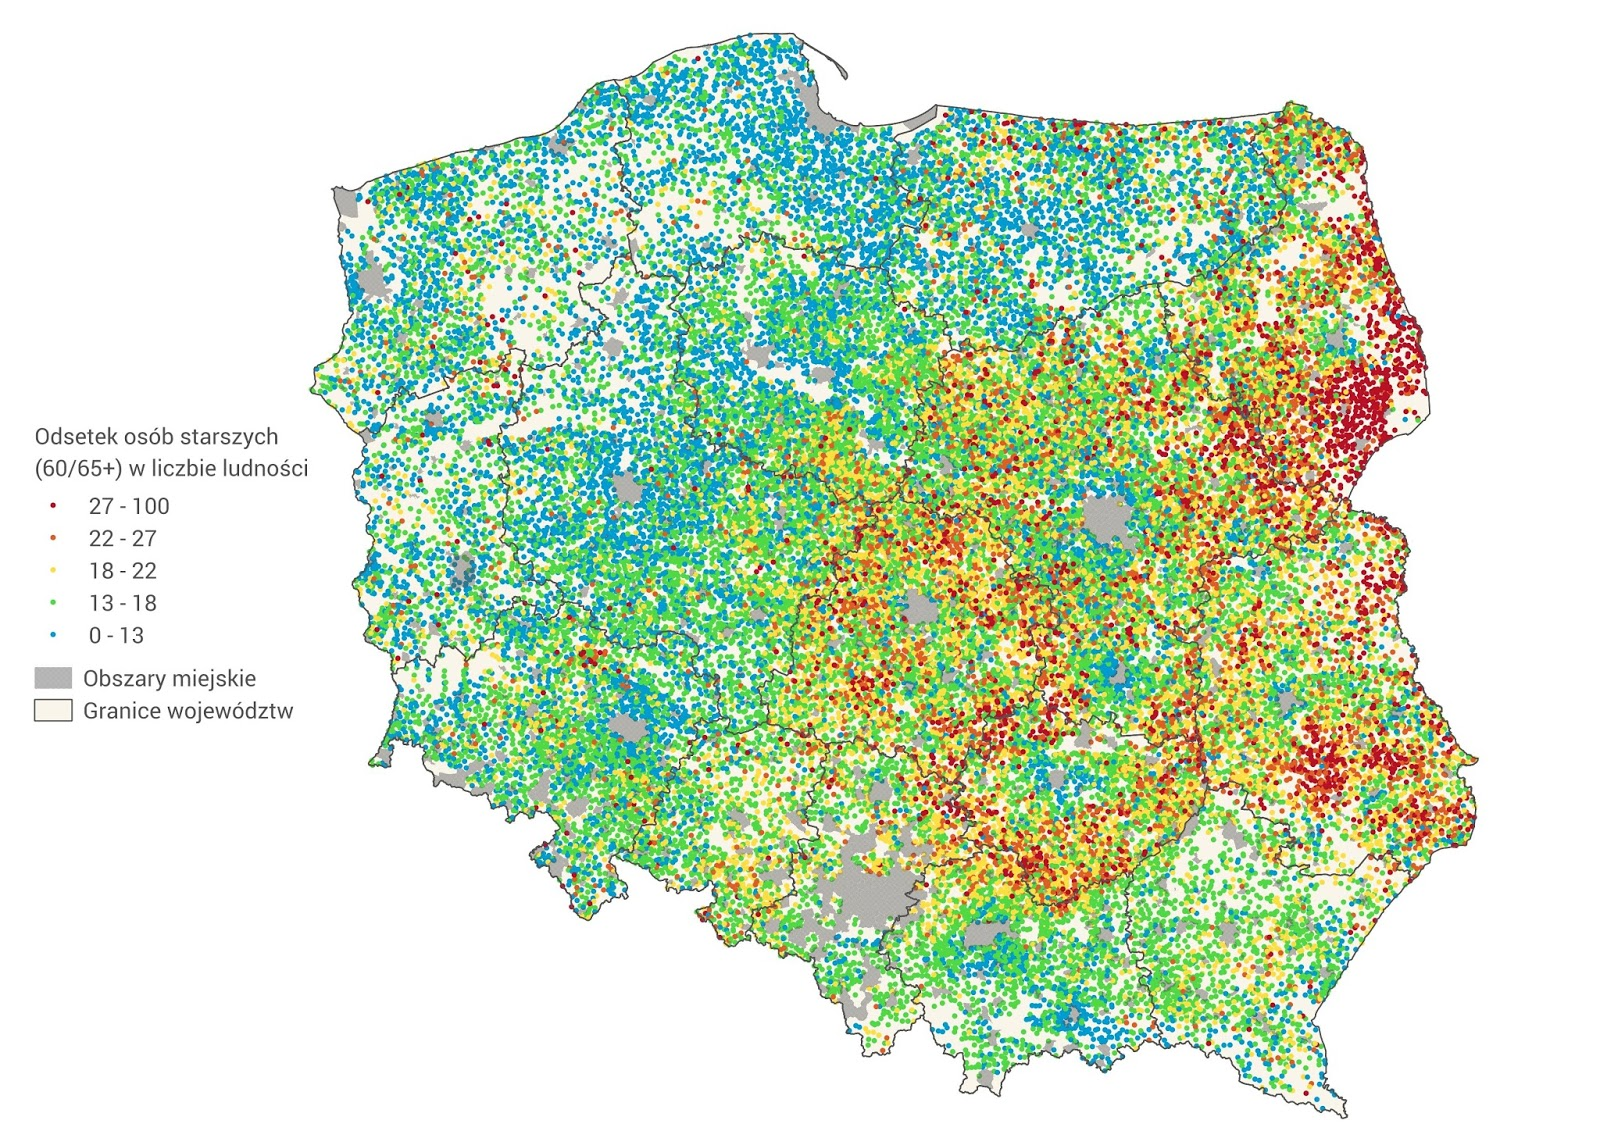 Villages of Poland by percentage of people aged 65+